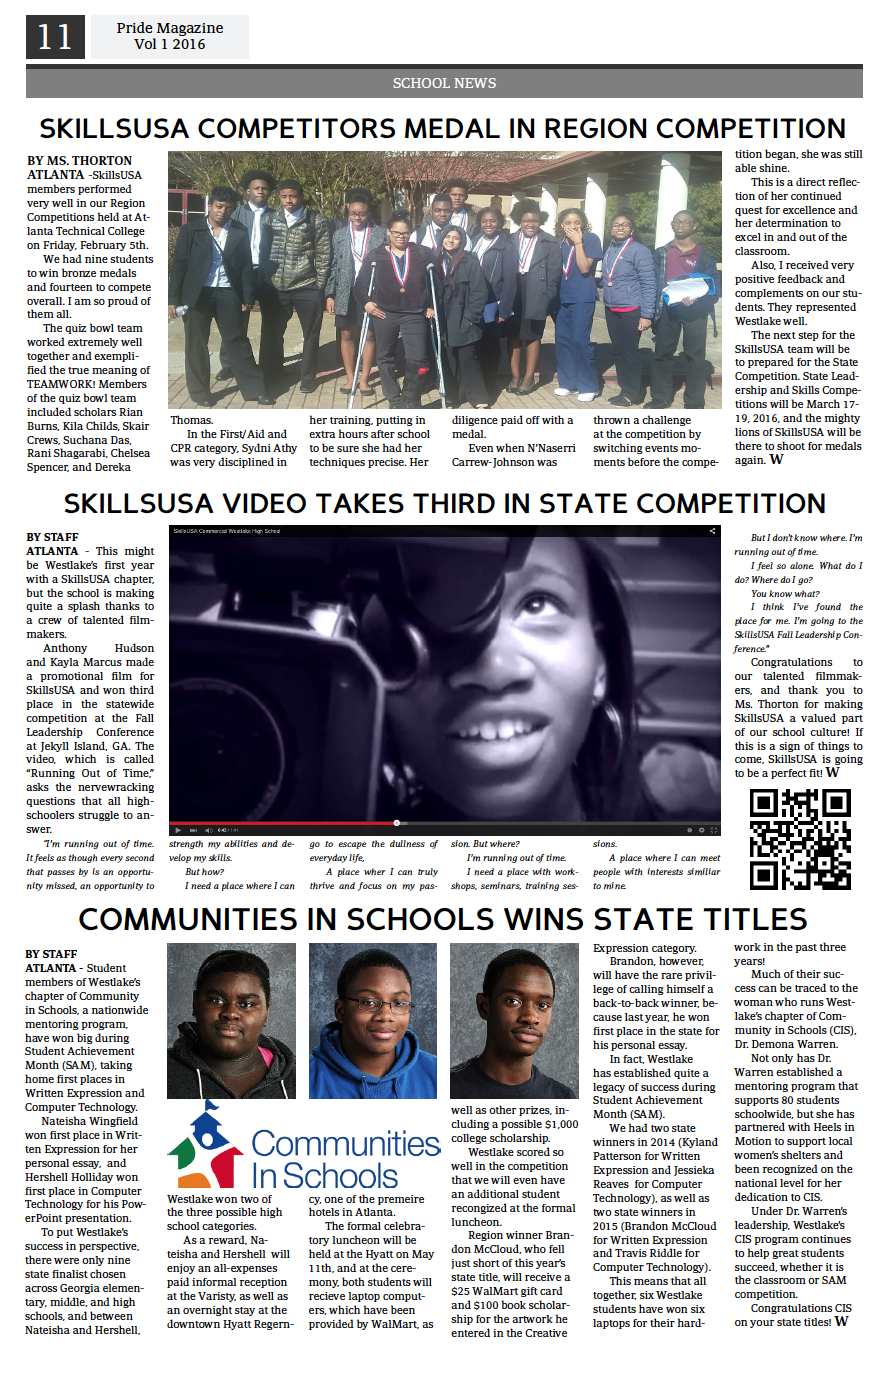 Newspaper Preview 011.png